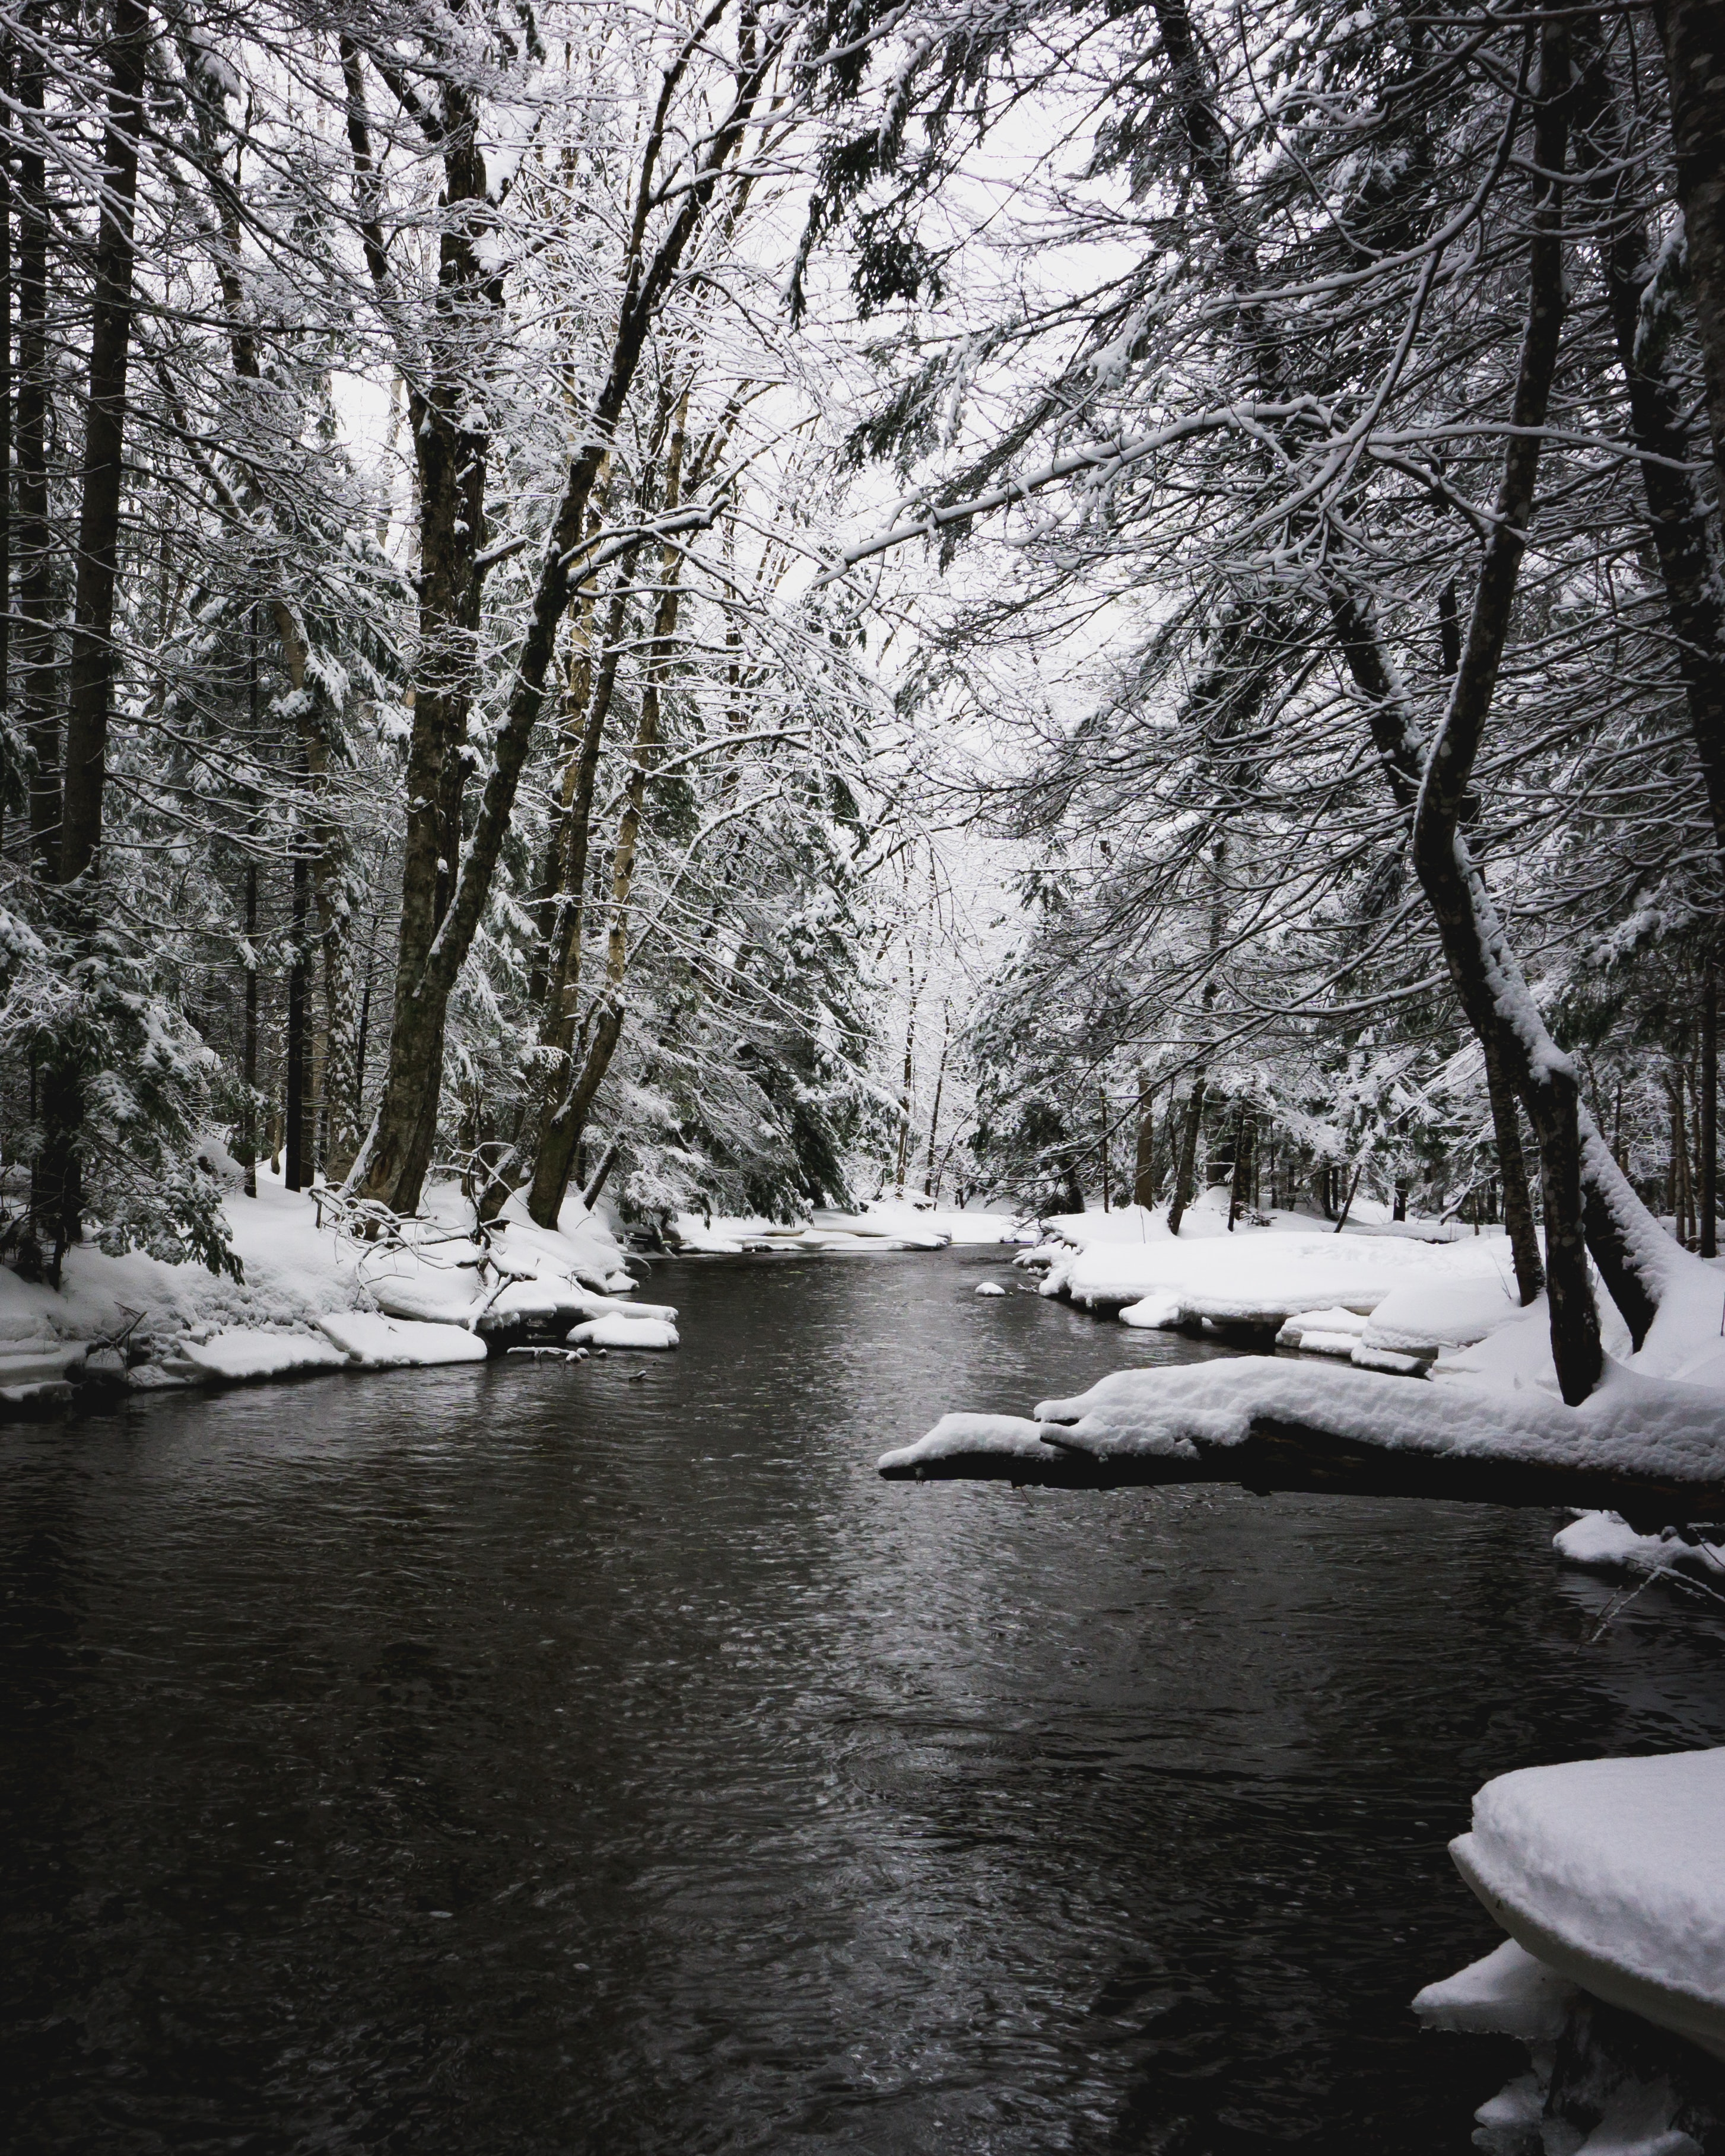 greyscale photography of river in between snow ground under shade of trees at daytime